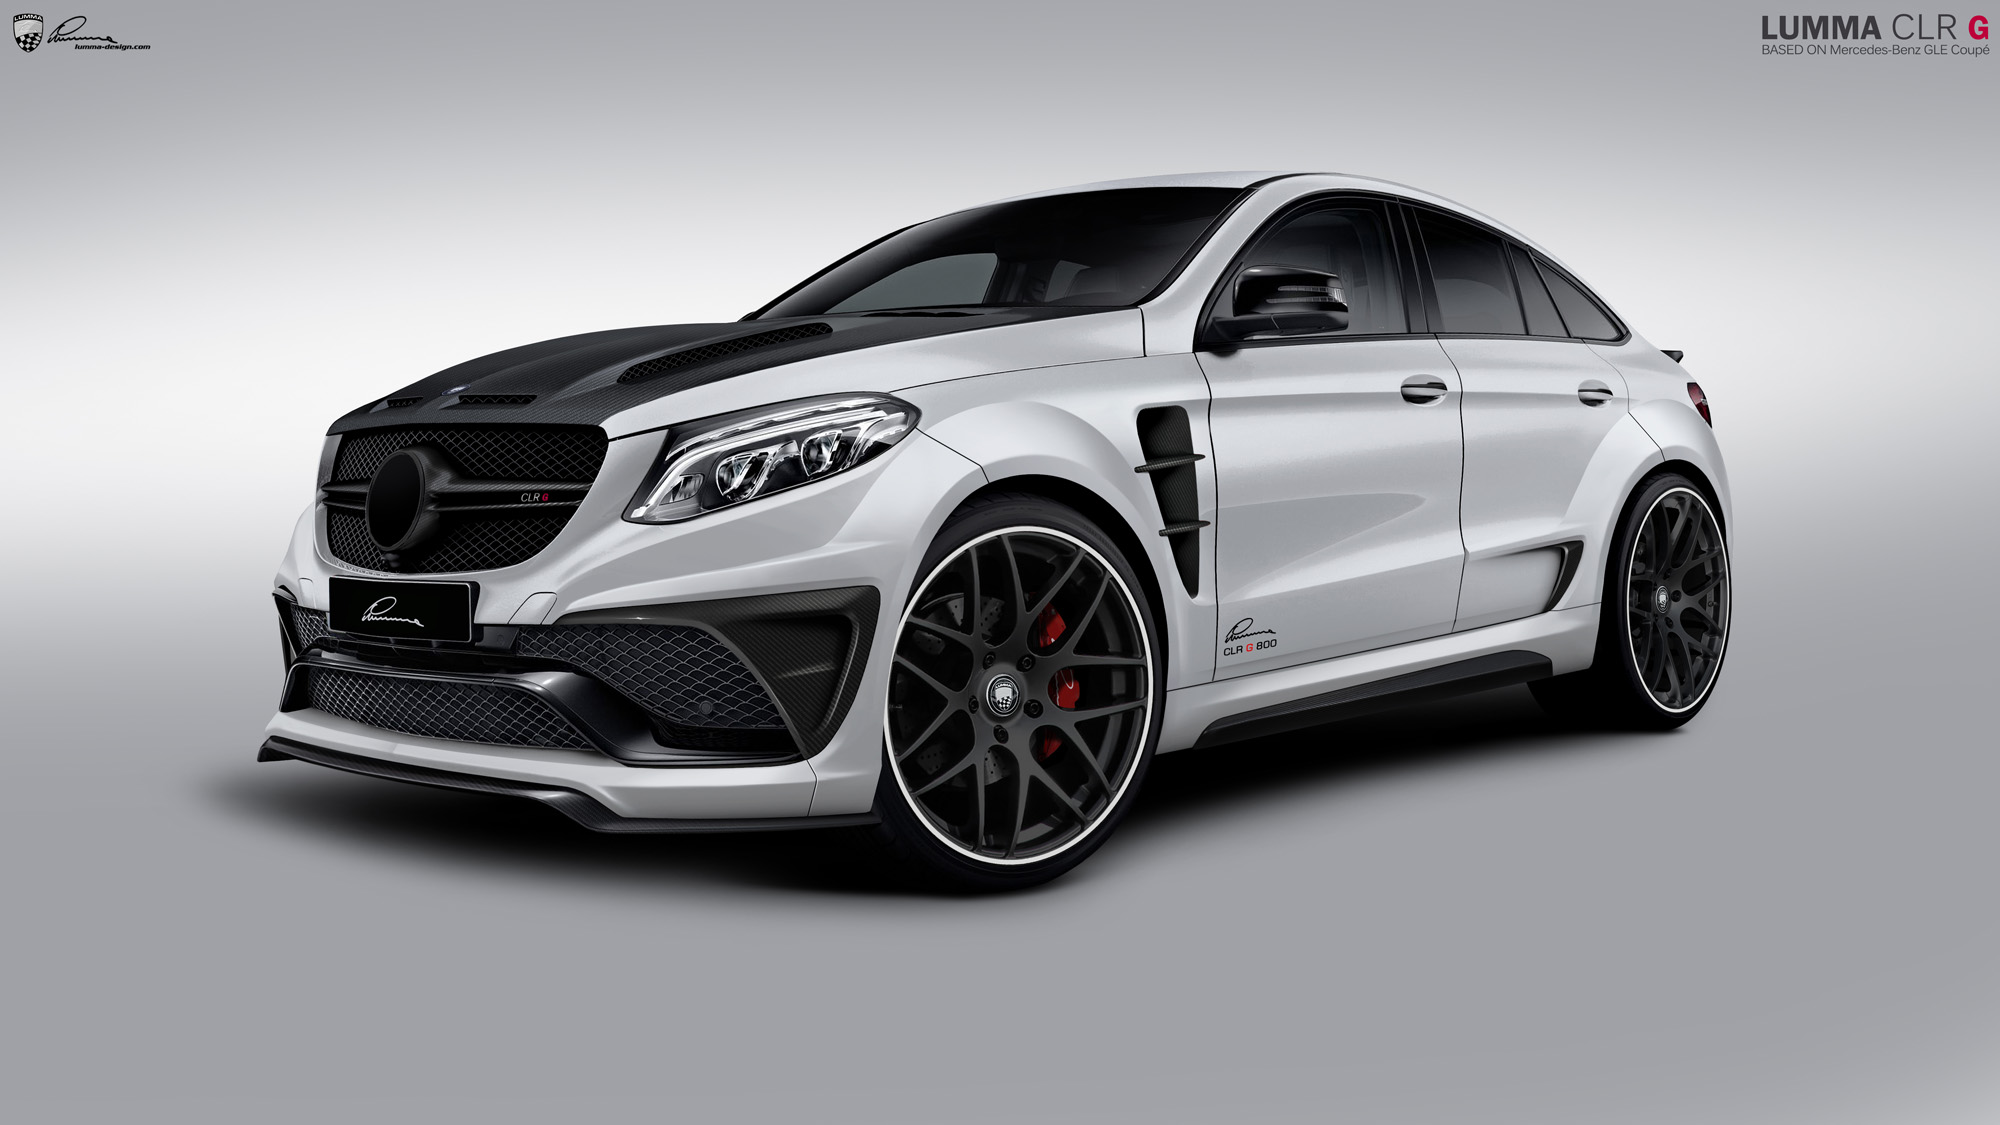 mercedes-amg-gle-63-s-coupé-lumma-design-04